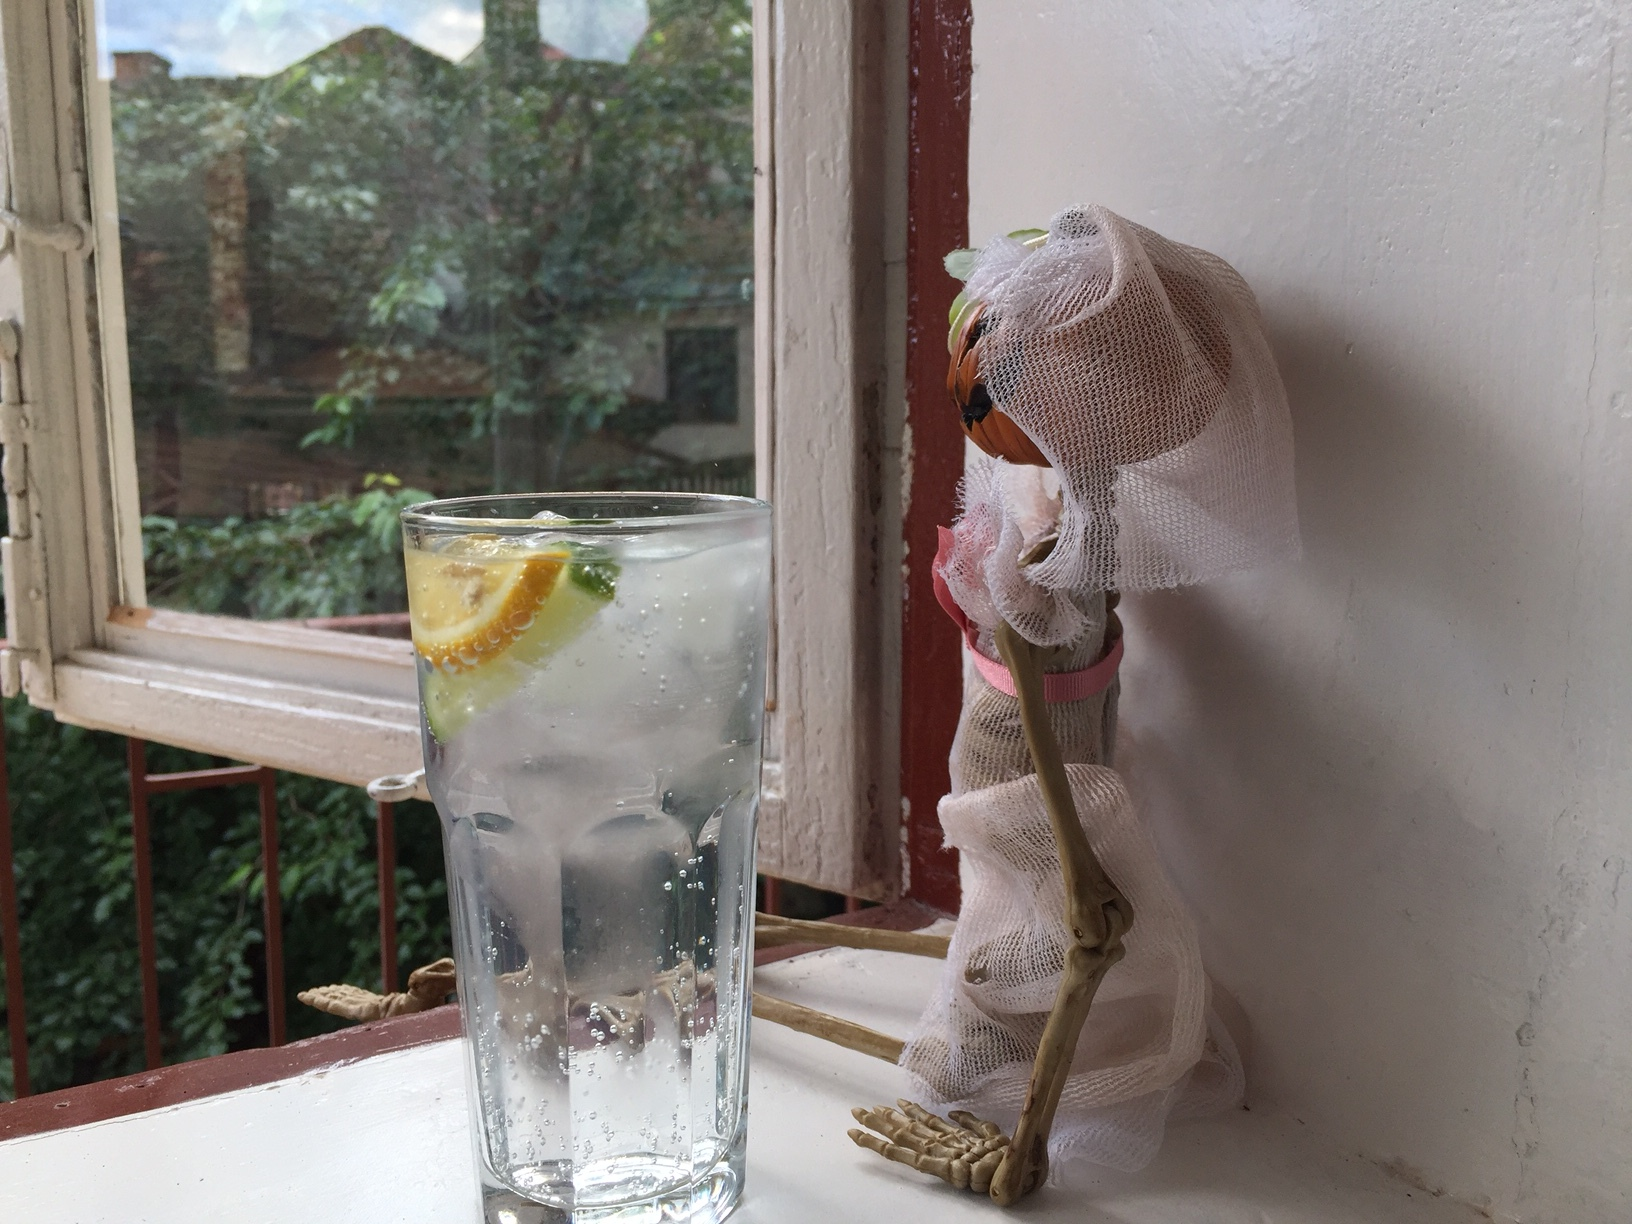 Relaxing in their apartment with a fresh G&T, this is the life!!